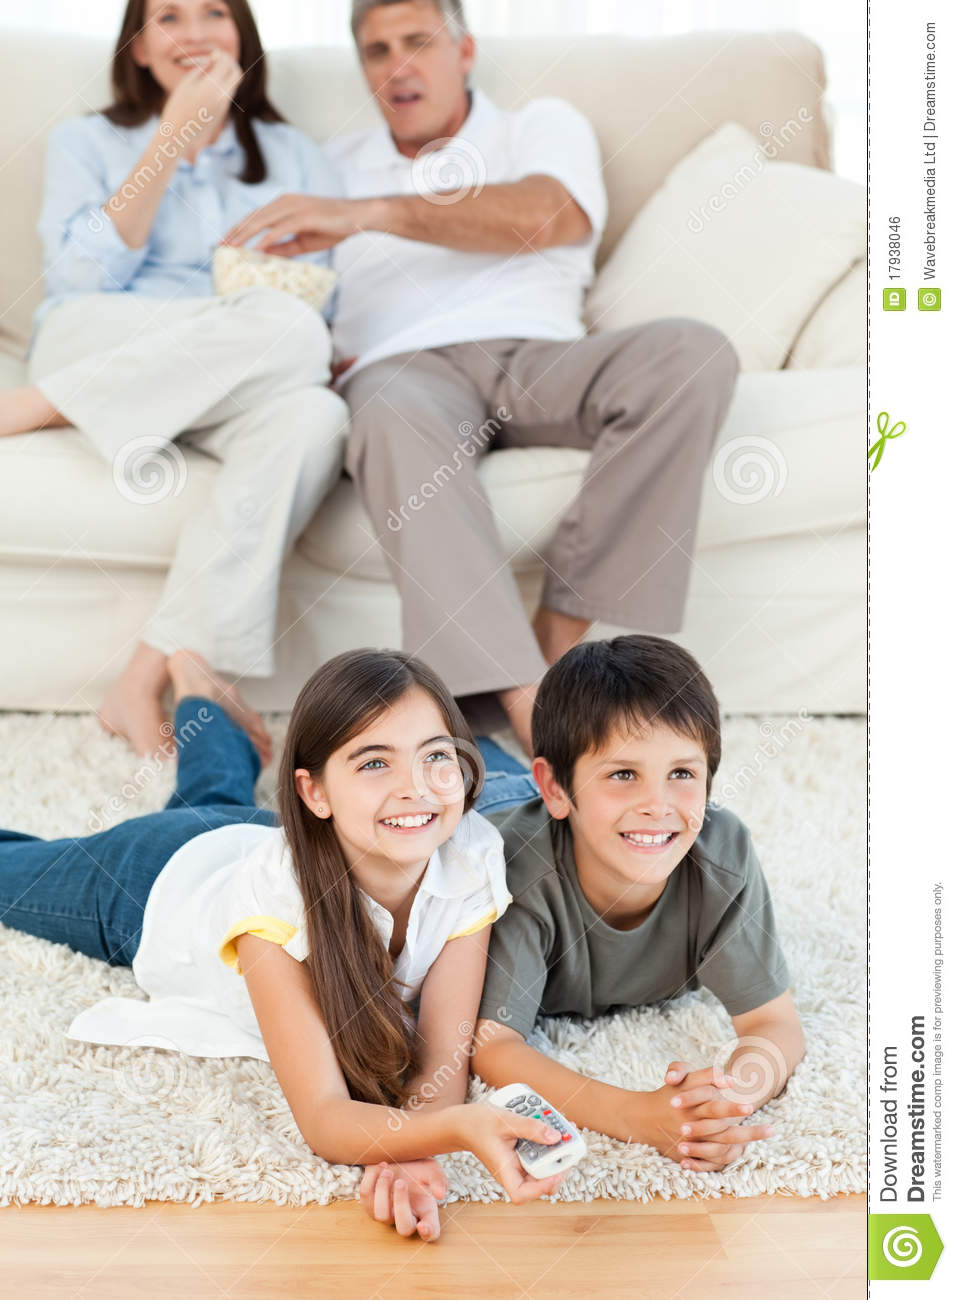 Family watching tv in the living room royalty free stock for Family in the living room